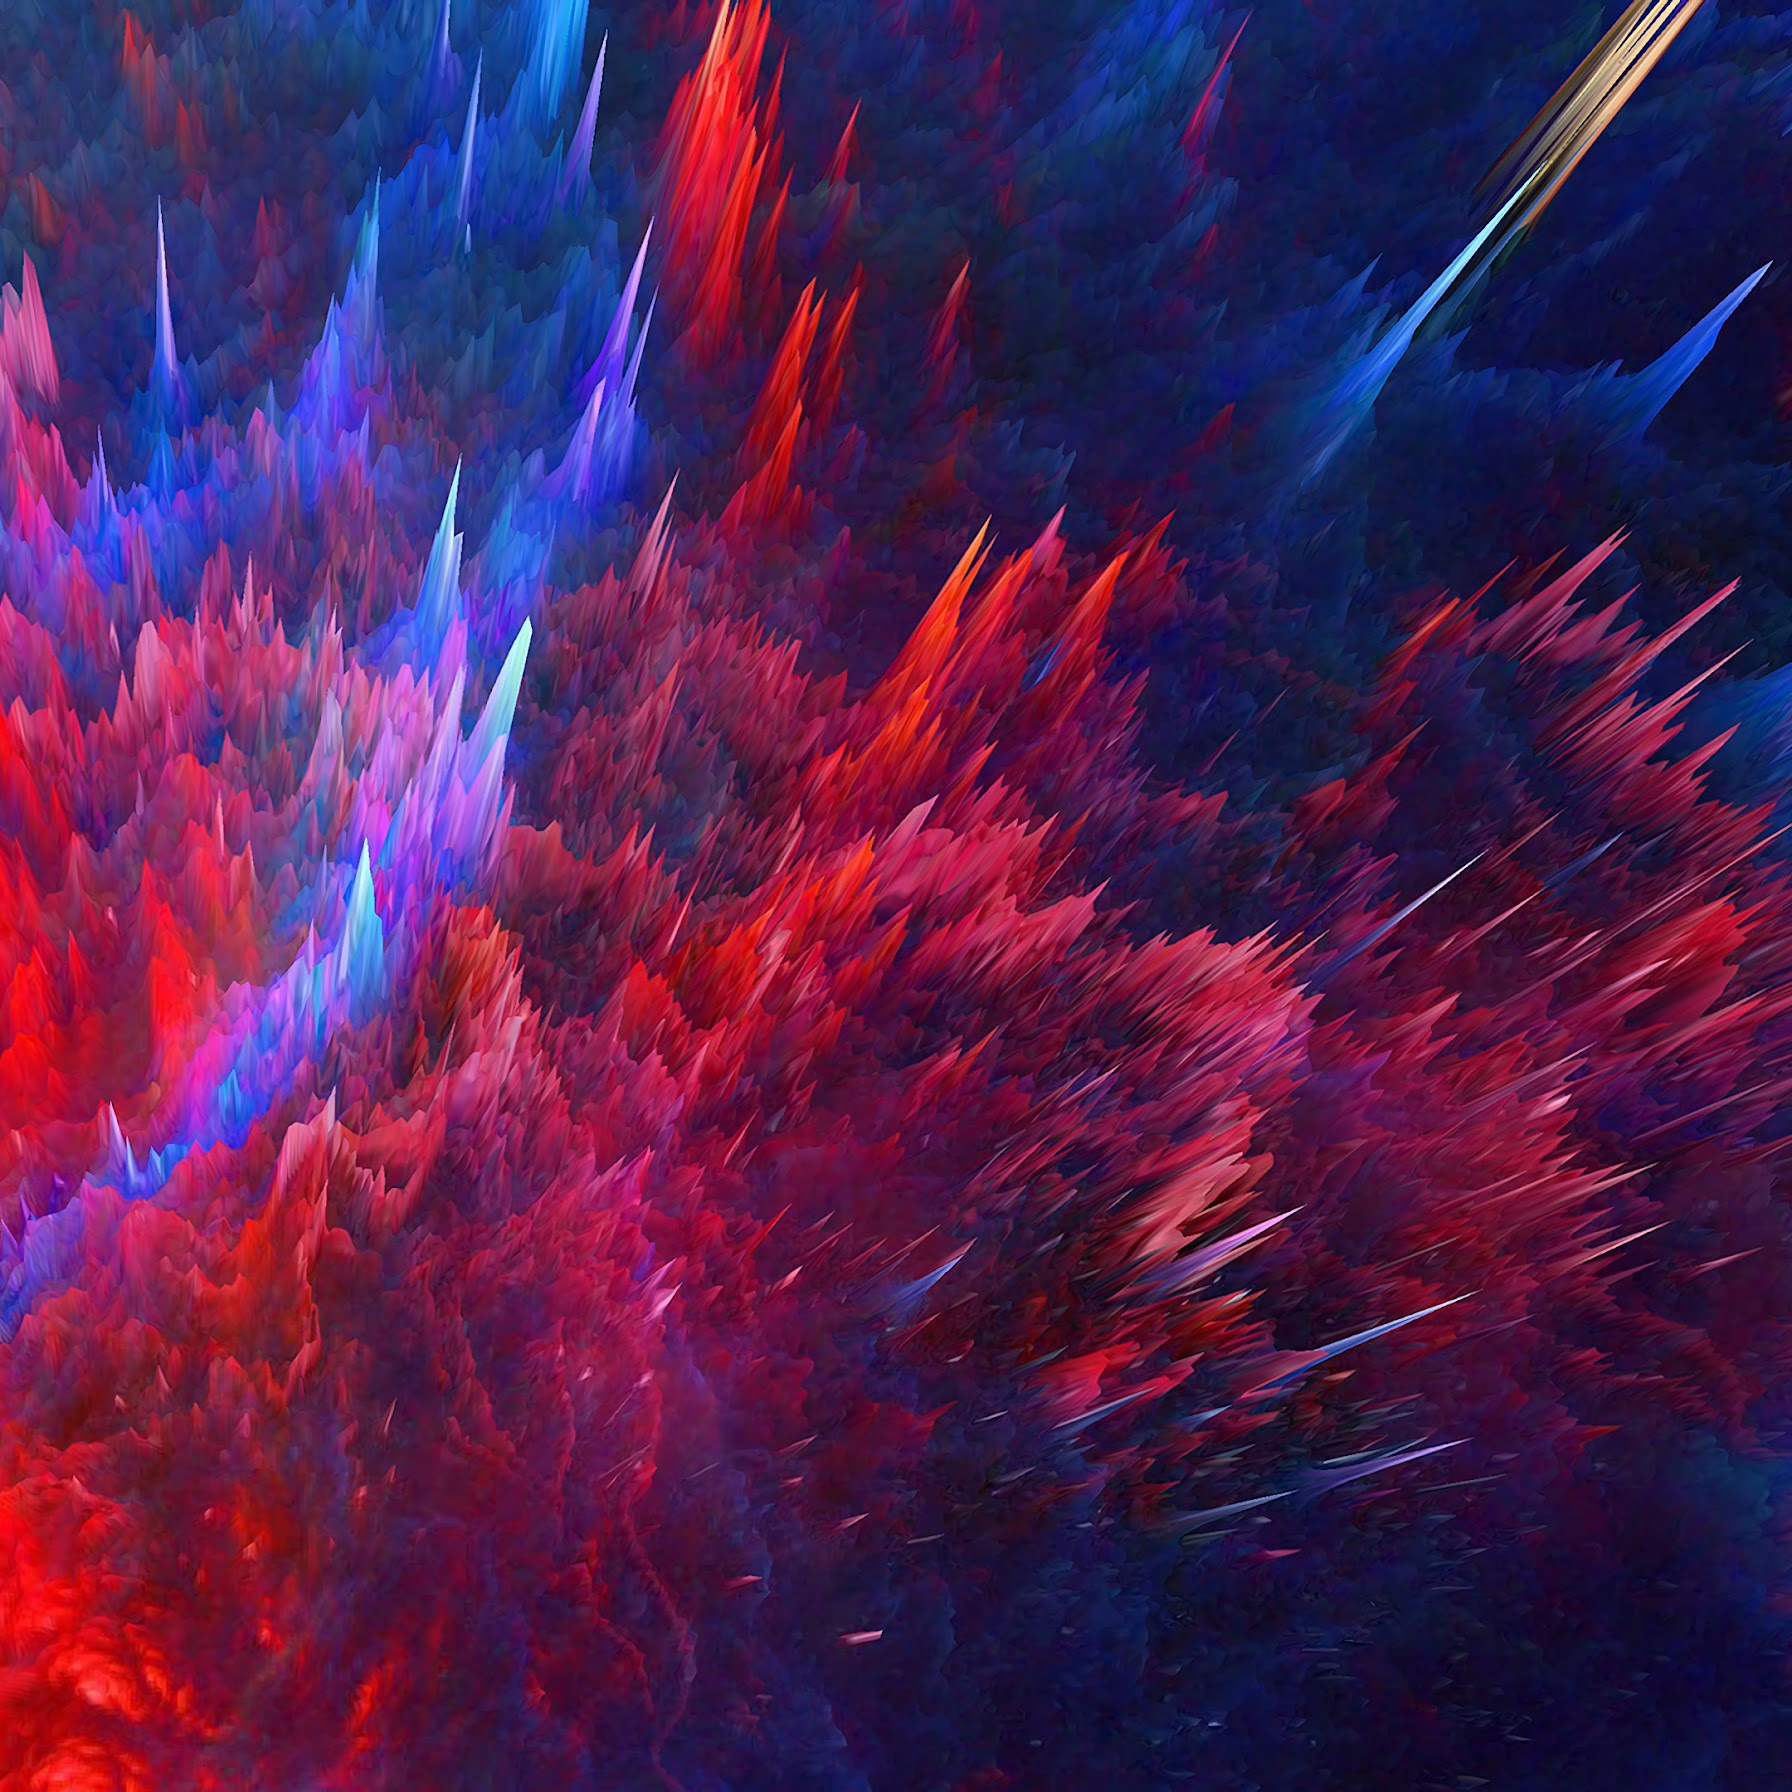 Colorful, Abstract, Wave, Illustration, Background, 4K